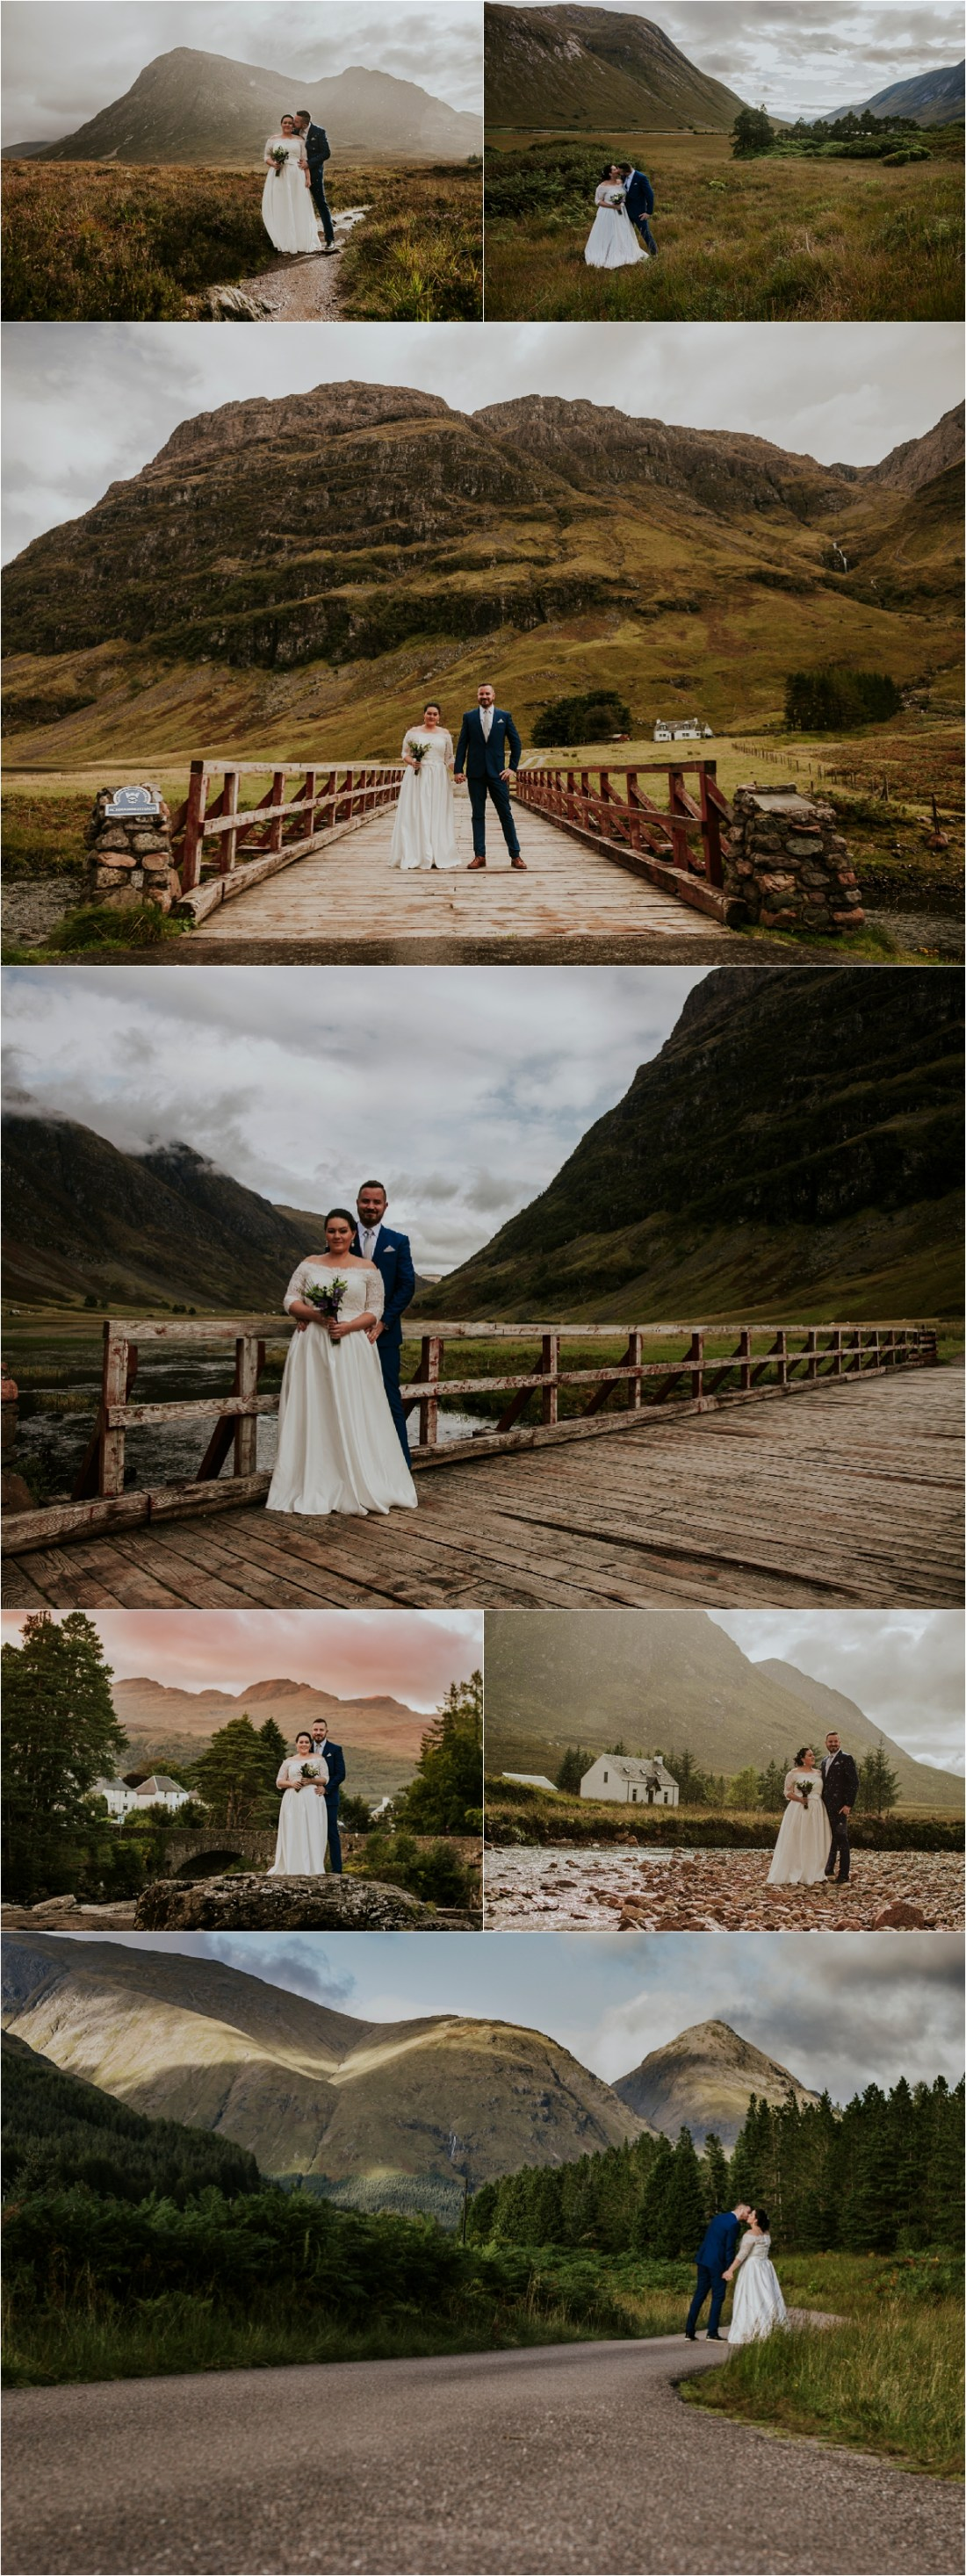 A Hungarian post-wedding shoot in Scotland by Weirdie Grizzly